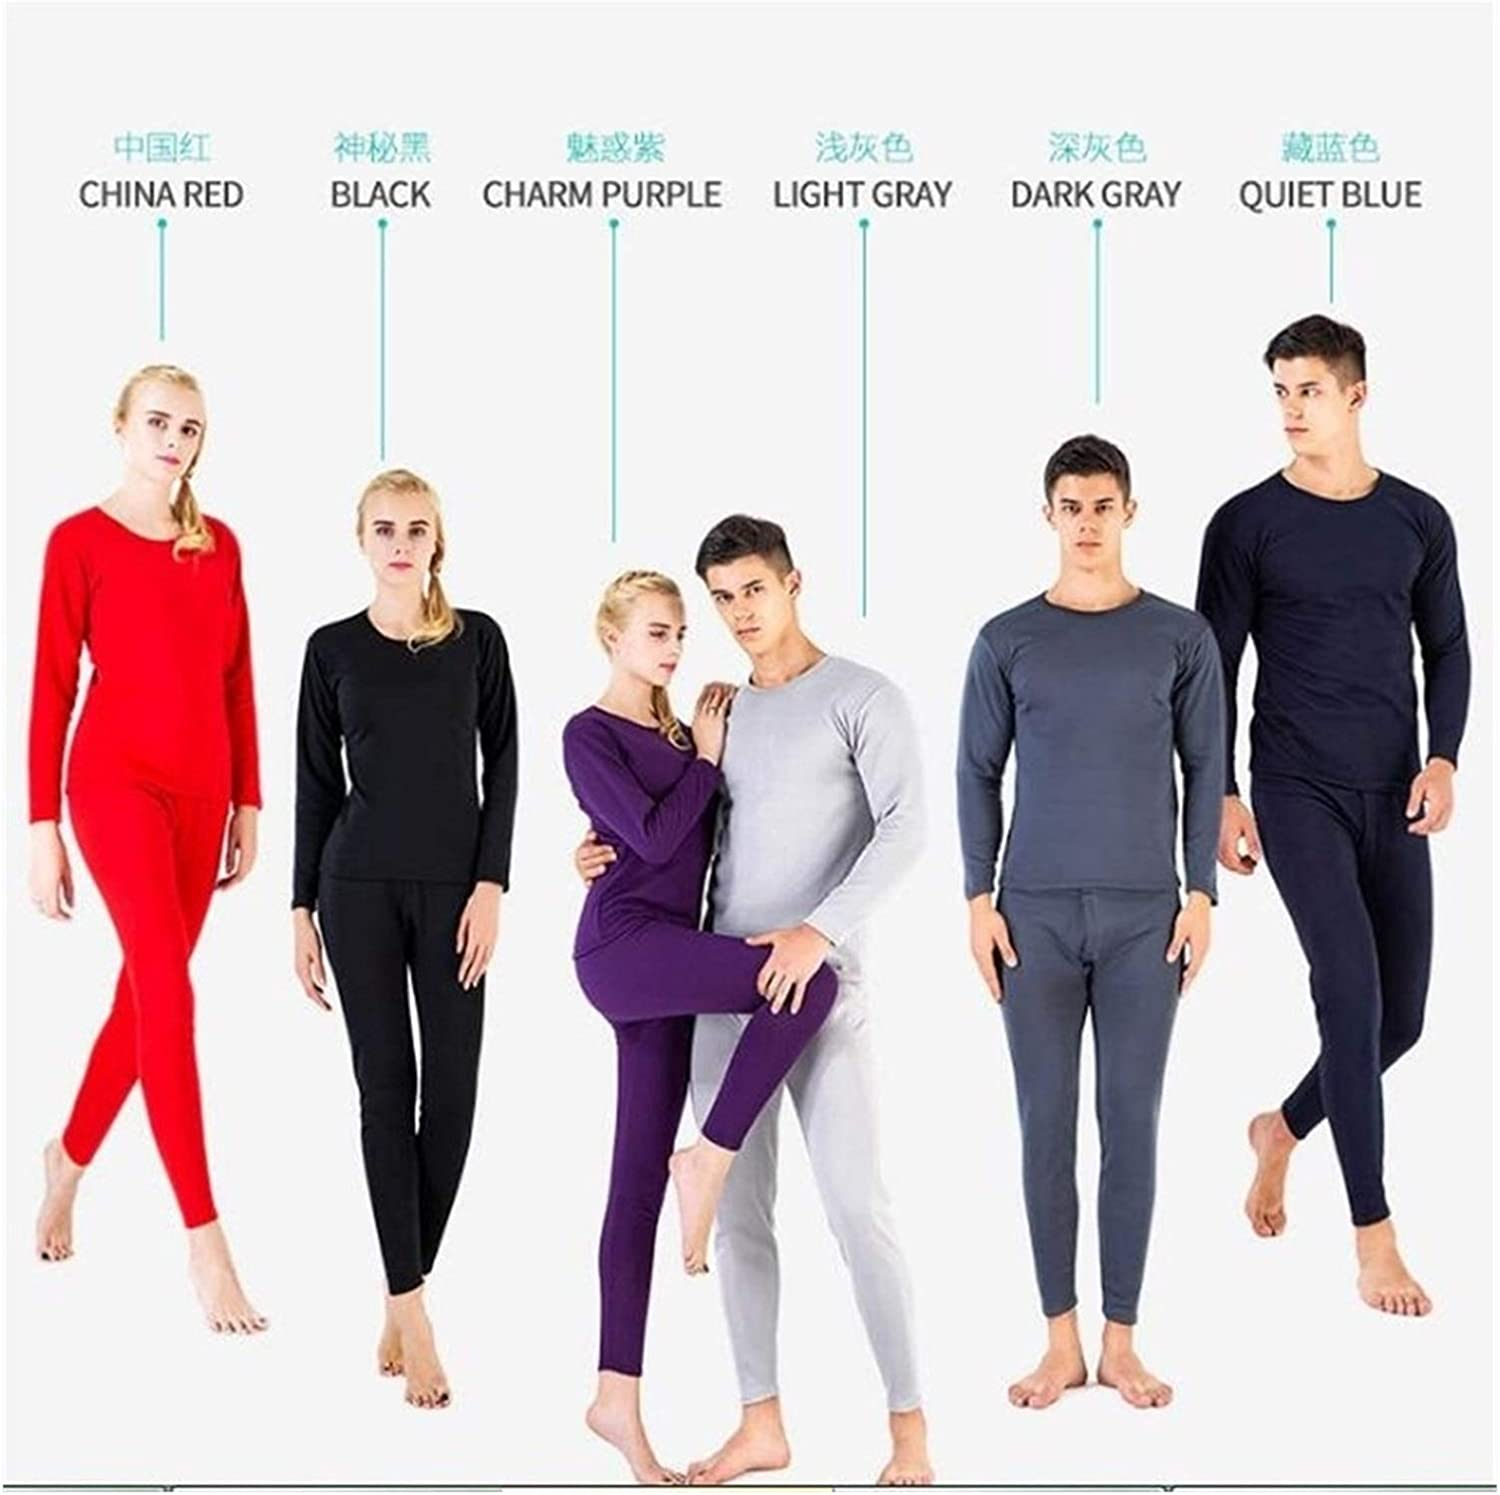 QWERBAM Winter Thick Women Thermal Underwear for Men Warm Layered Clothing Pajamas Thermos Men Second Thermal (Color : Long Johns menDark Grey, Size : L.)